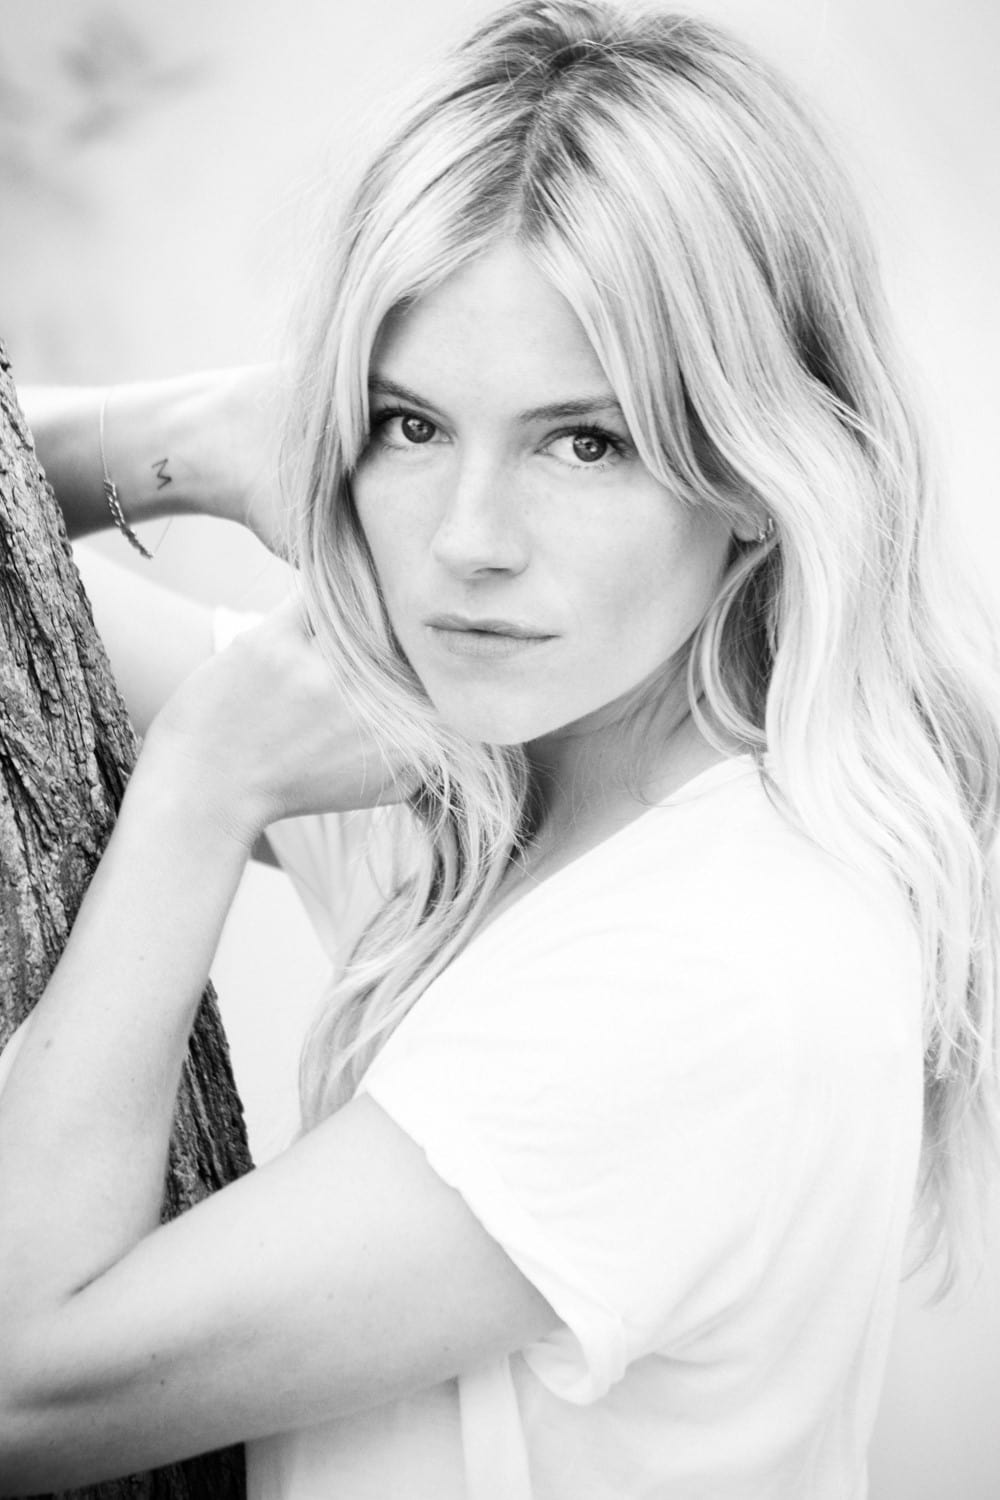 Sienna Miller will portray Elizabeth 'Beth' Ailes, former NBC news producer and wife of Roger Ailes